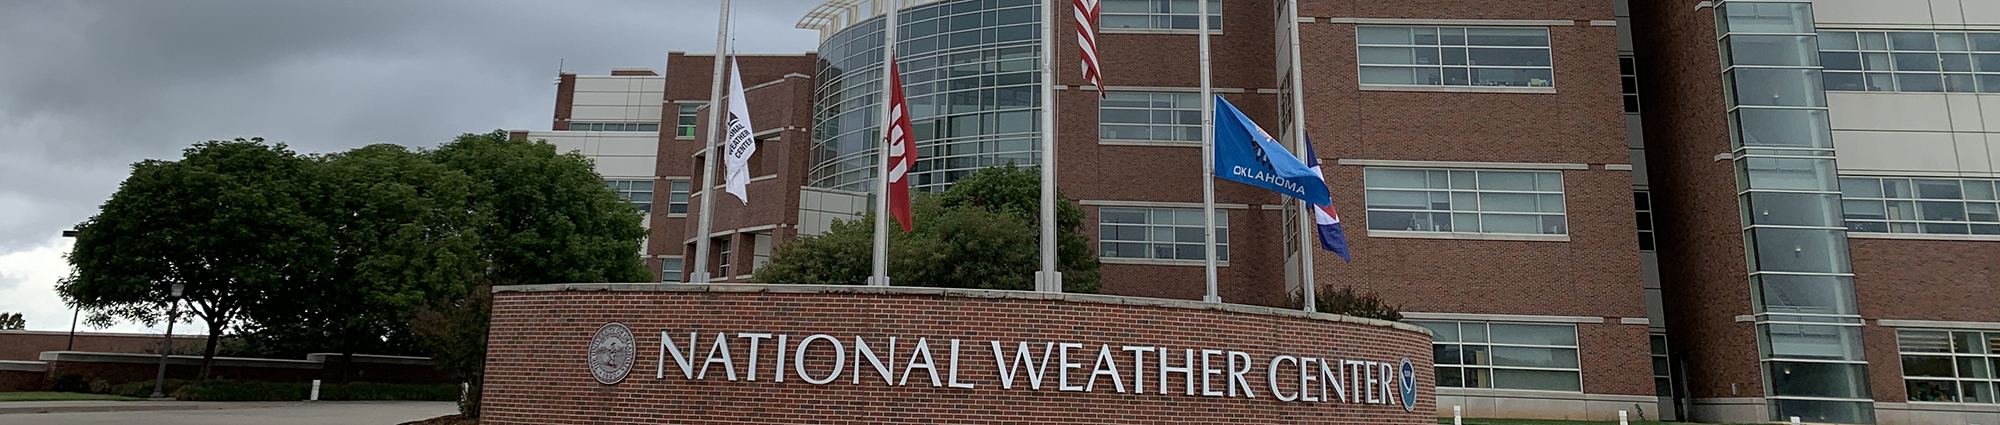 Welcome to the National Weather Center (NWC)